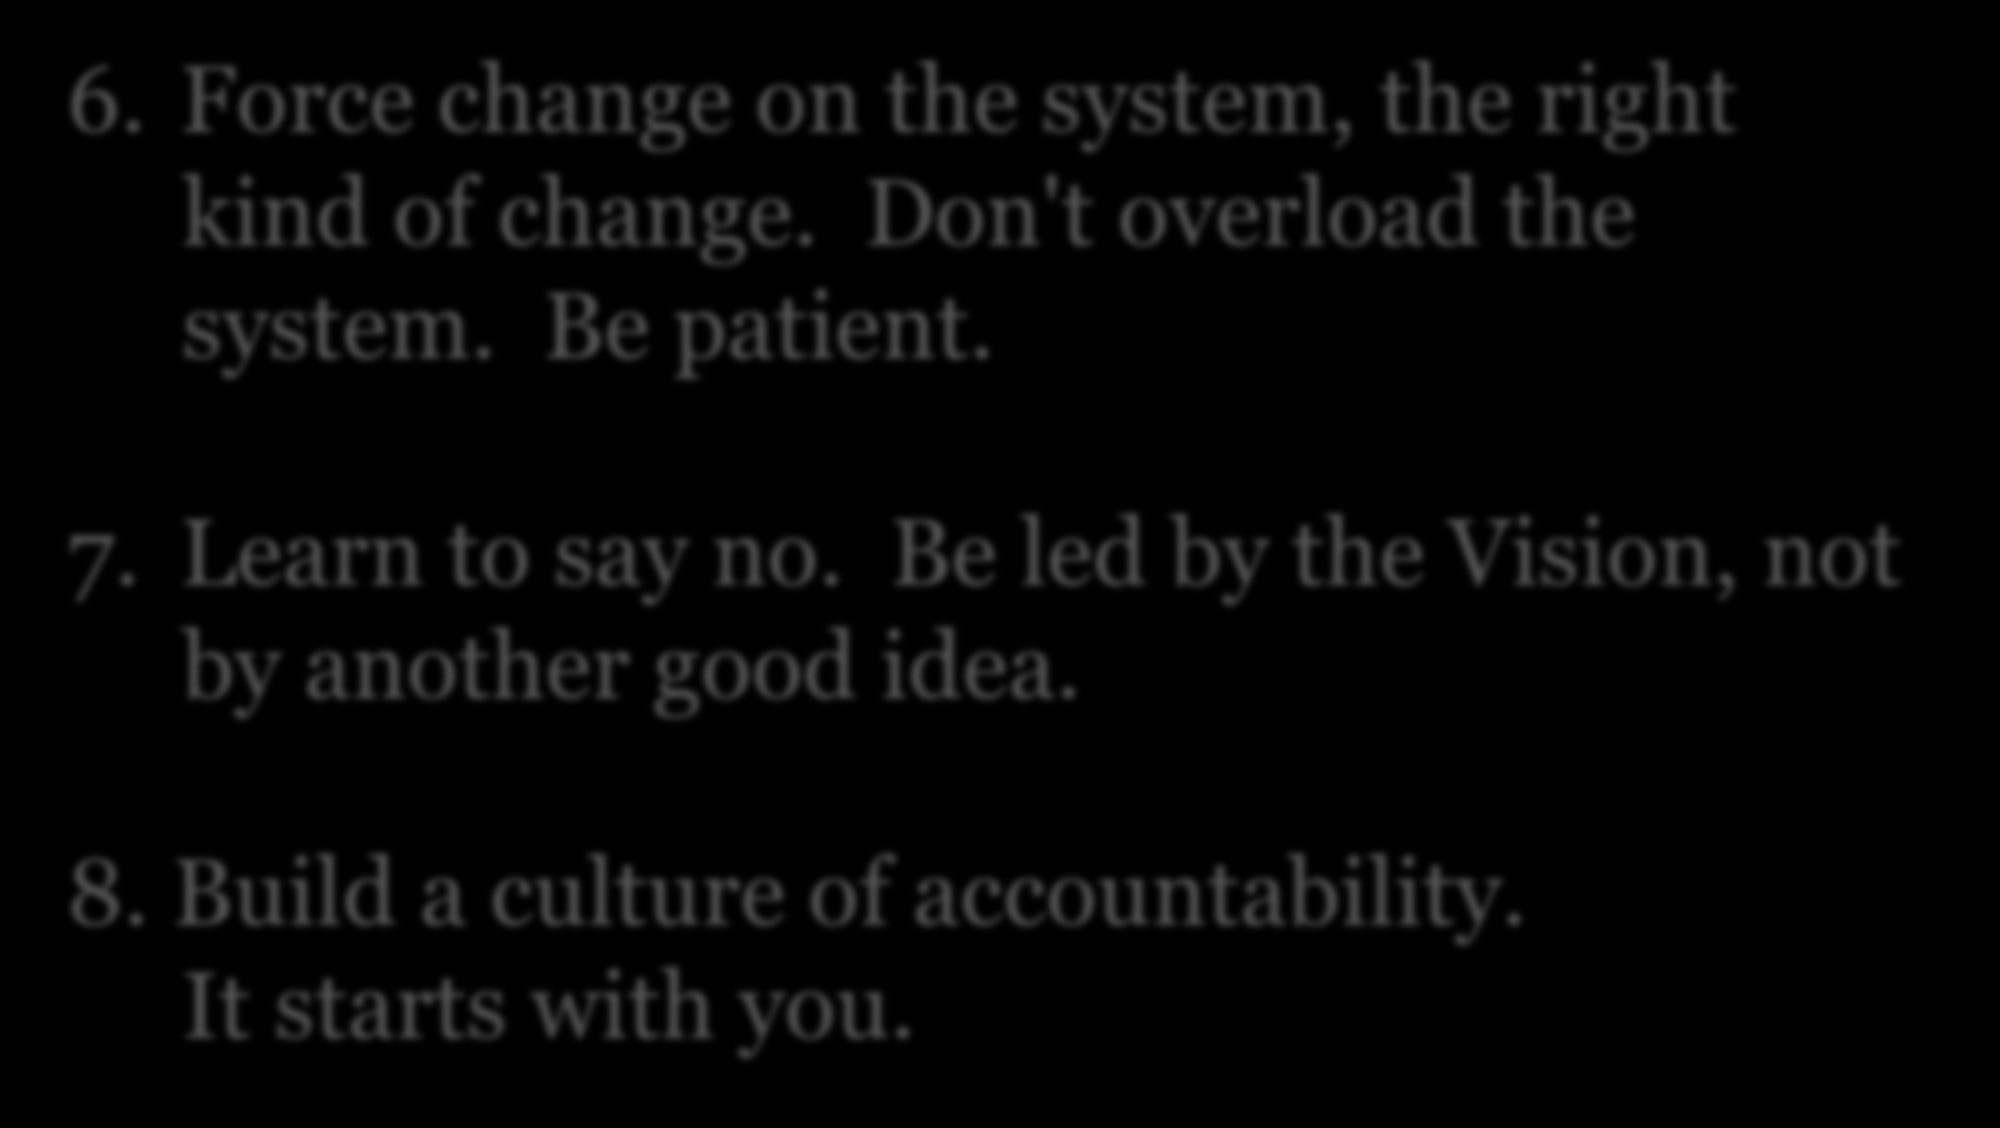 Visionary Leadership 6. Force change on the system, the right kind of change. Don't overload the system. Be patient. 7.